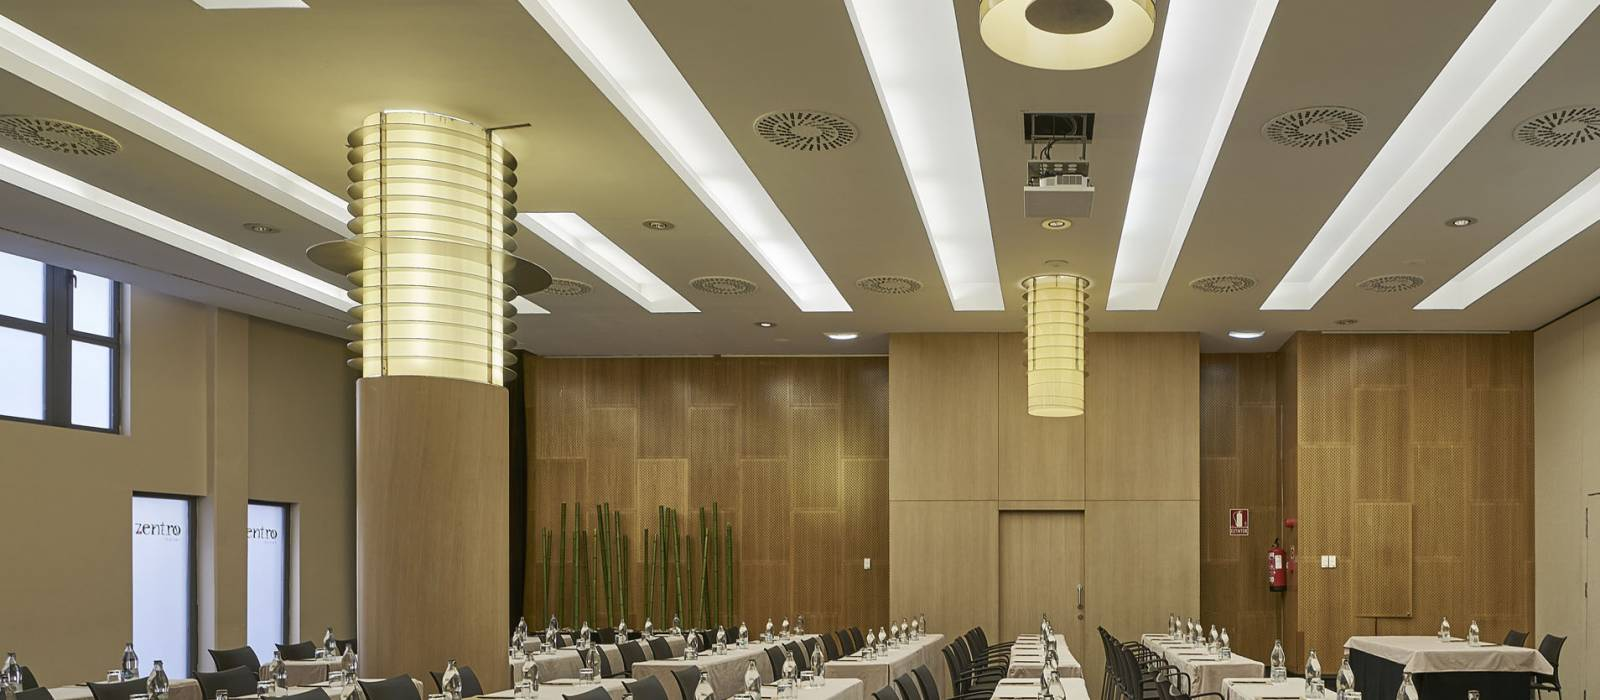 Meetings and Events - Vincci Zentro 4*